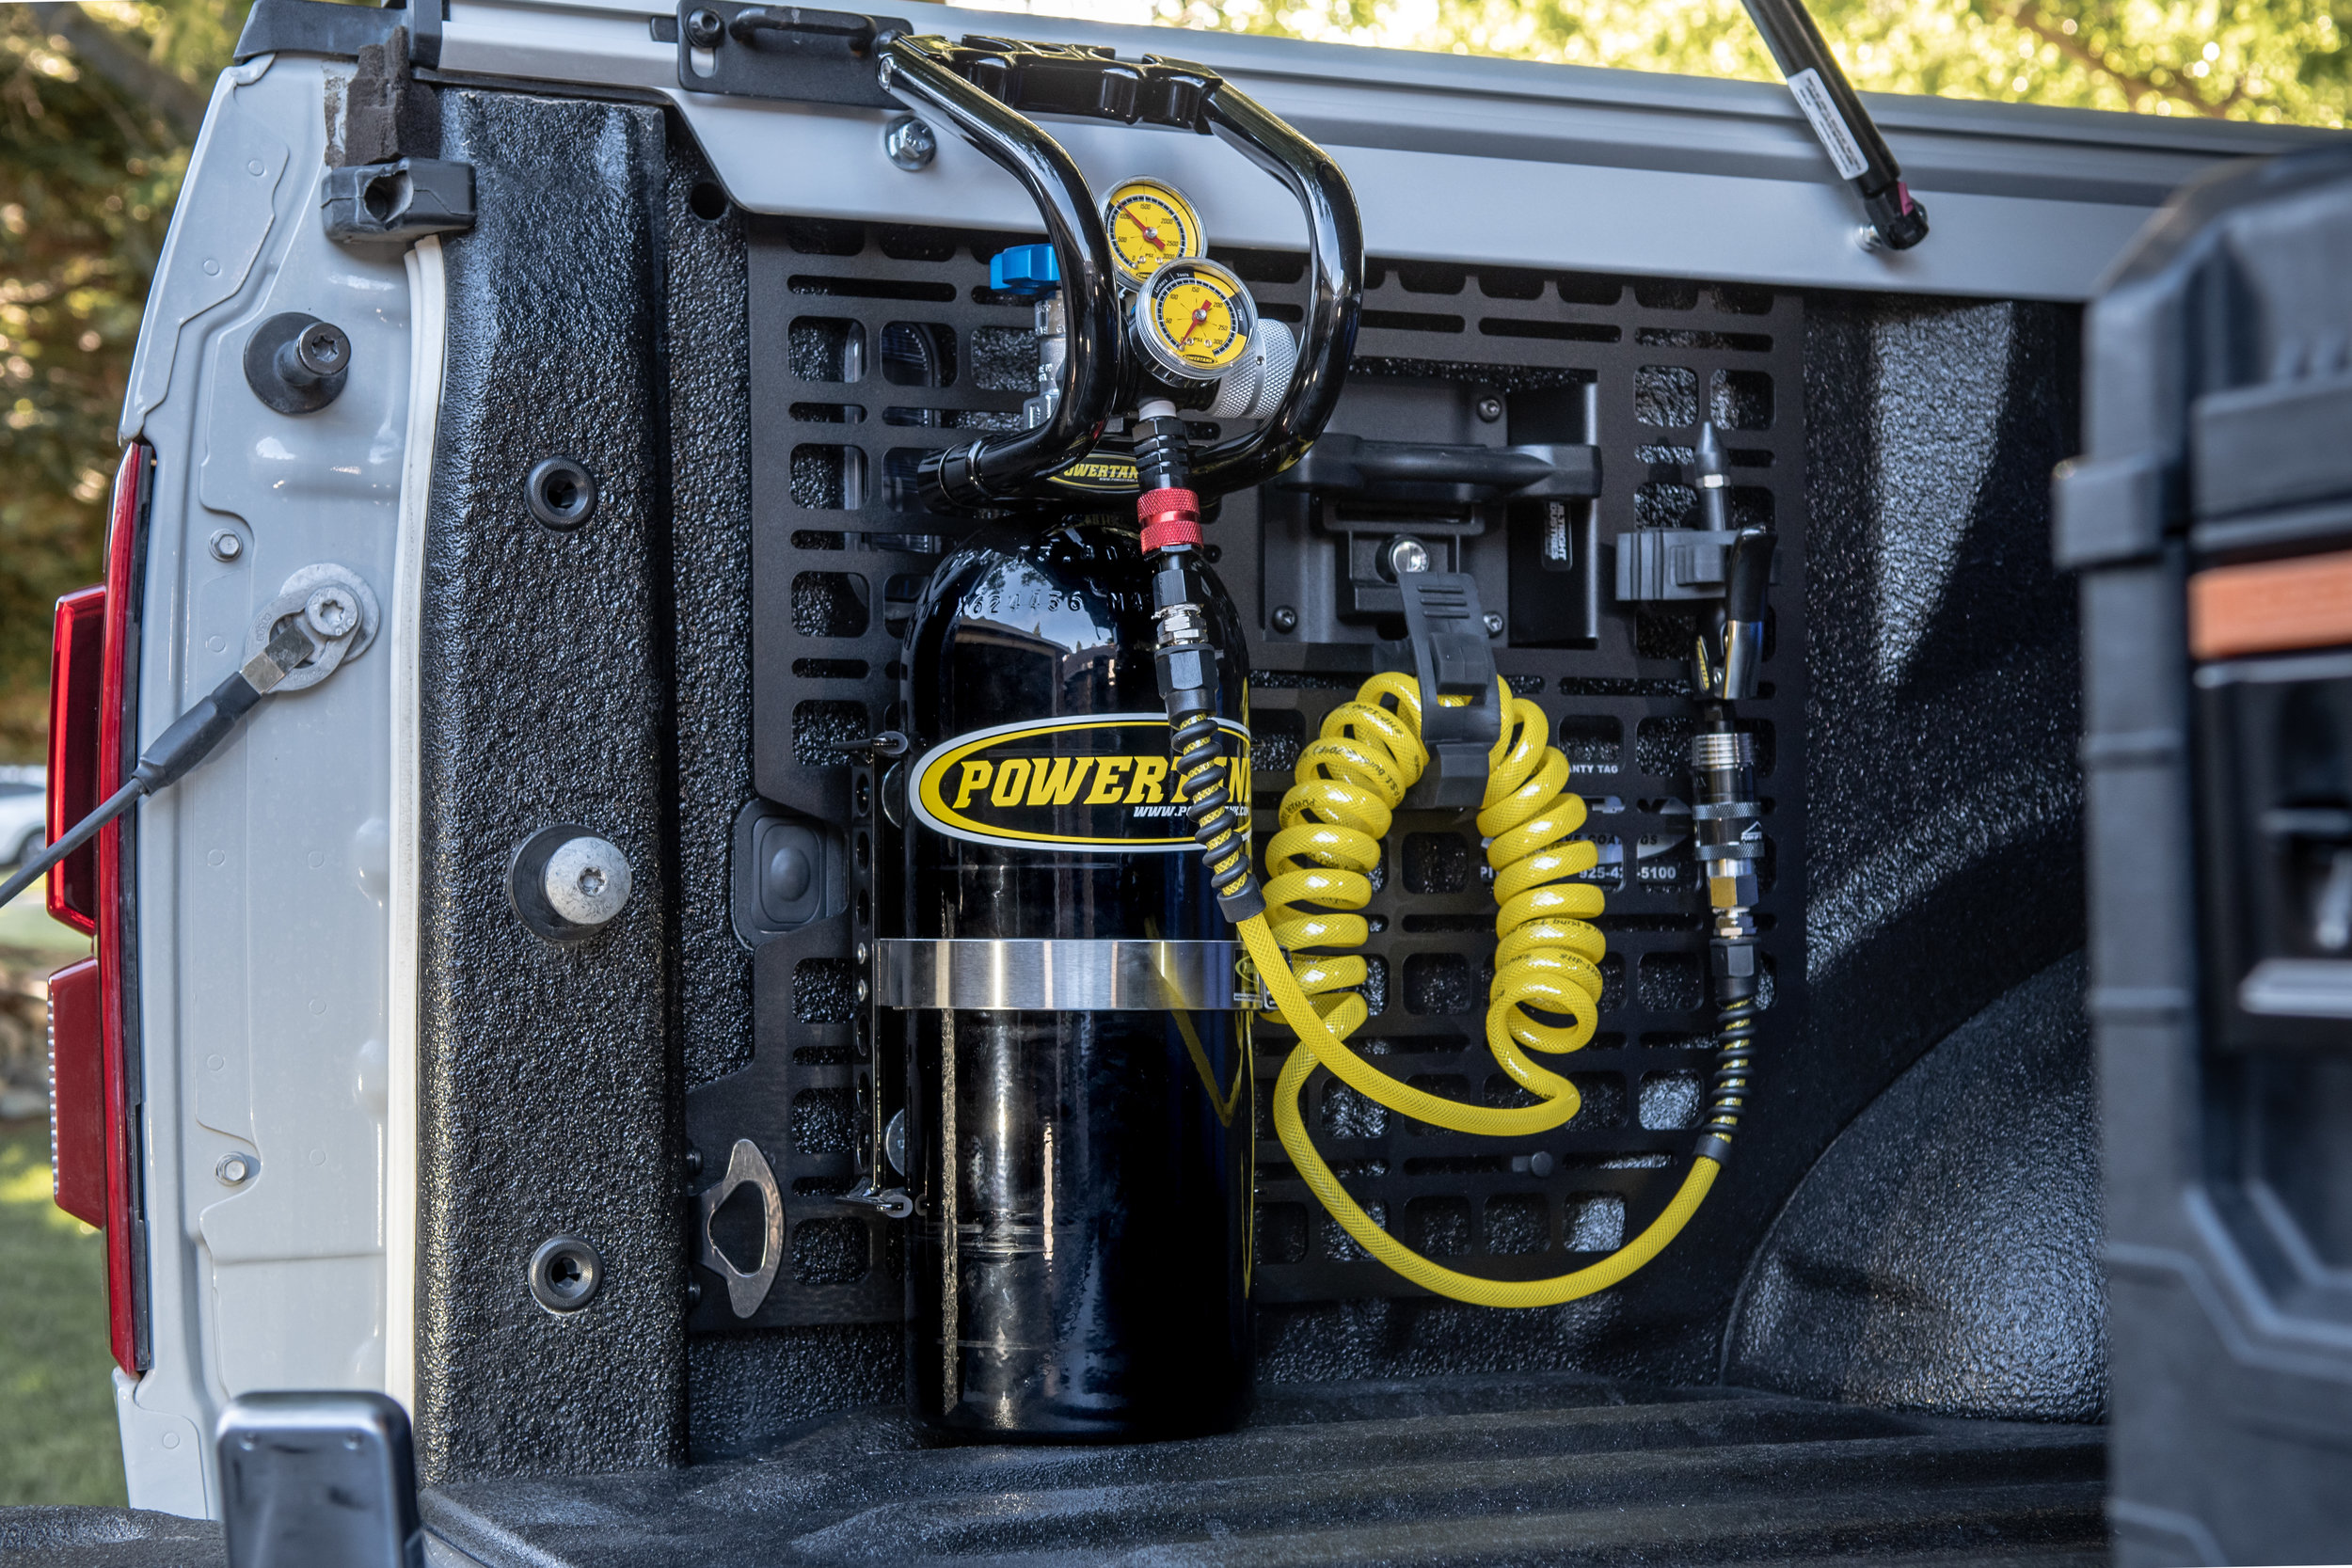 Ford Raptor Bed Rack shown here with a Powertank mounted for off road use.